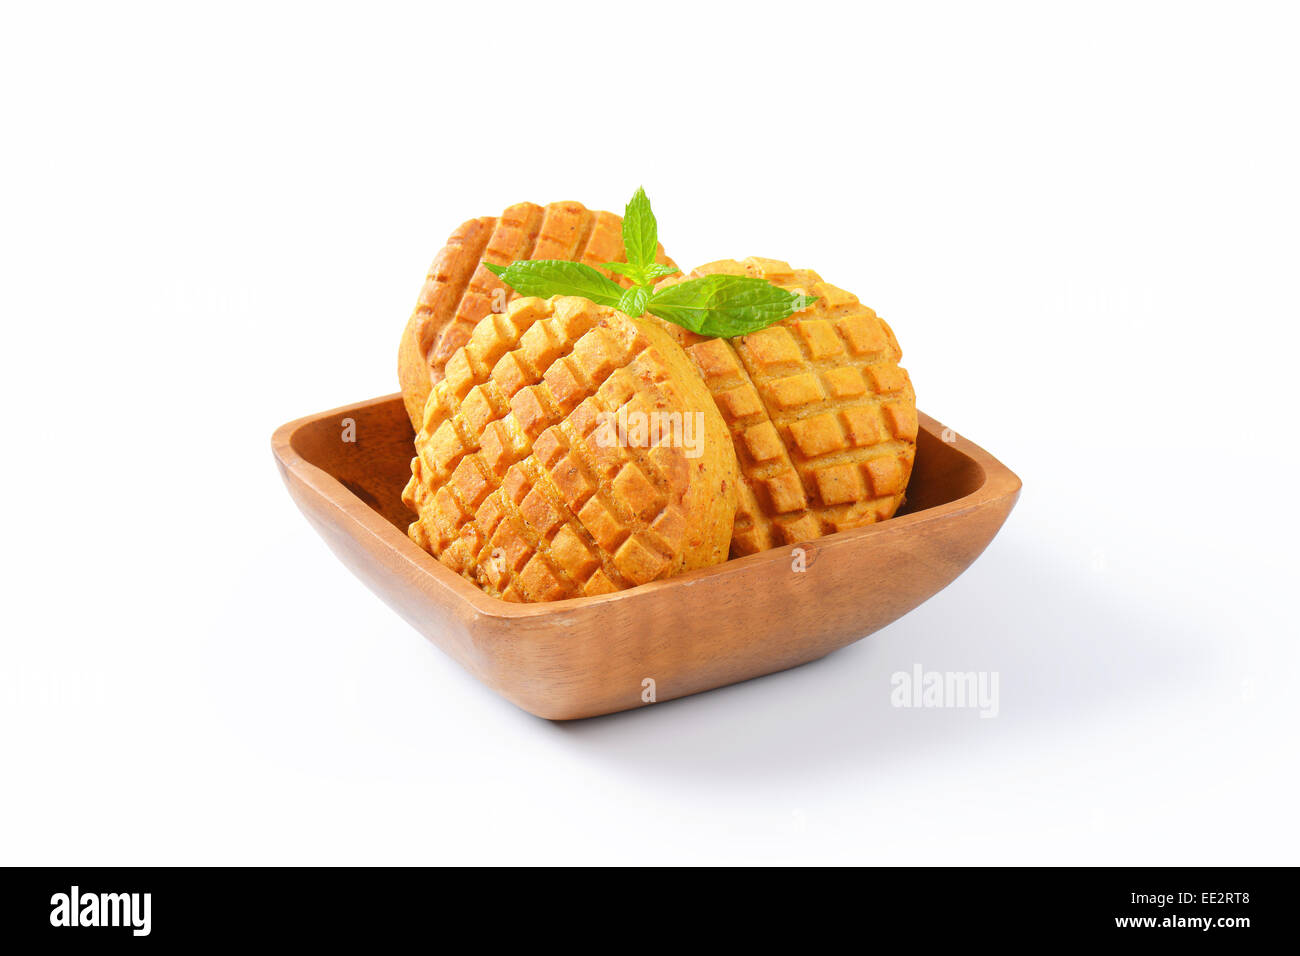 Small savory biscuits in square wooden bowl - Stock Image